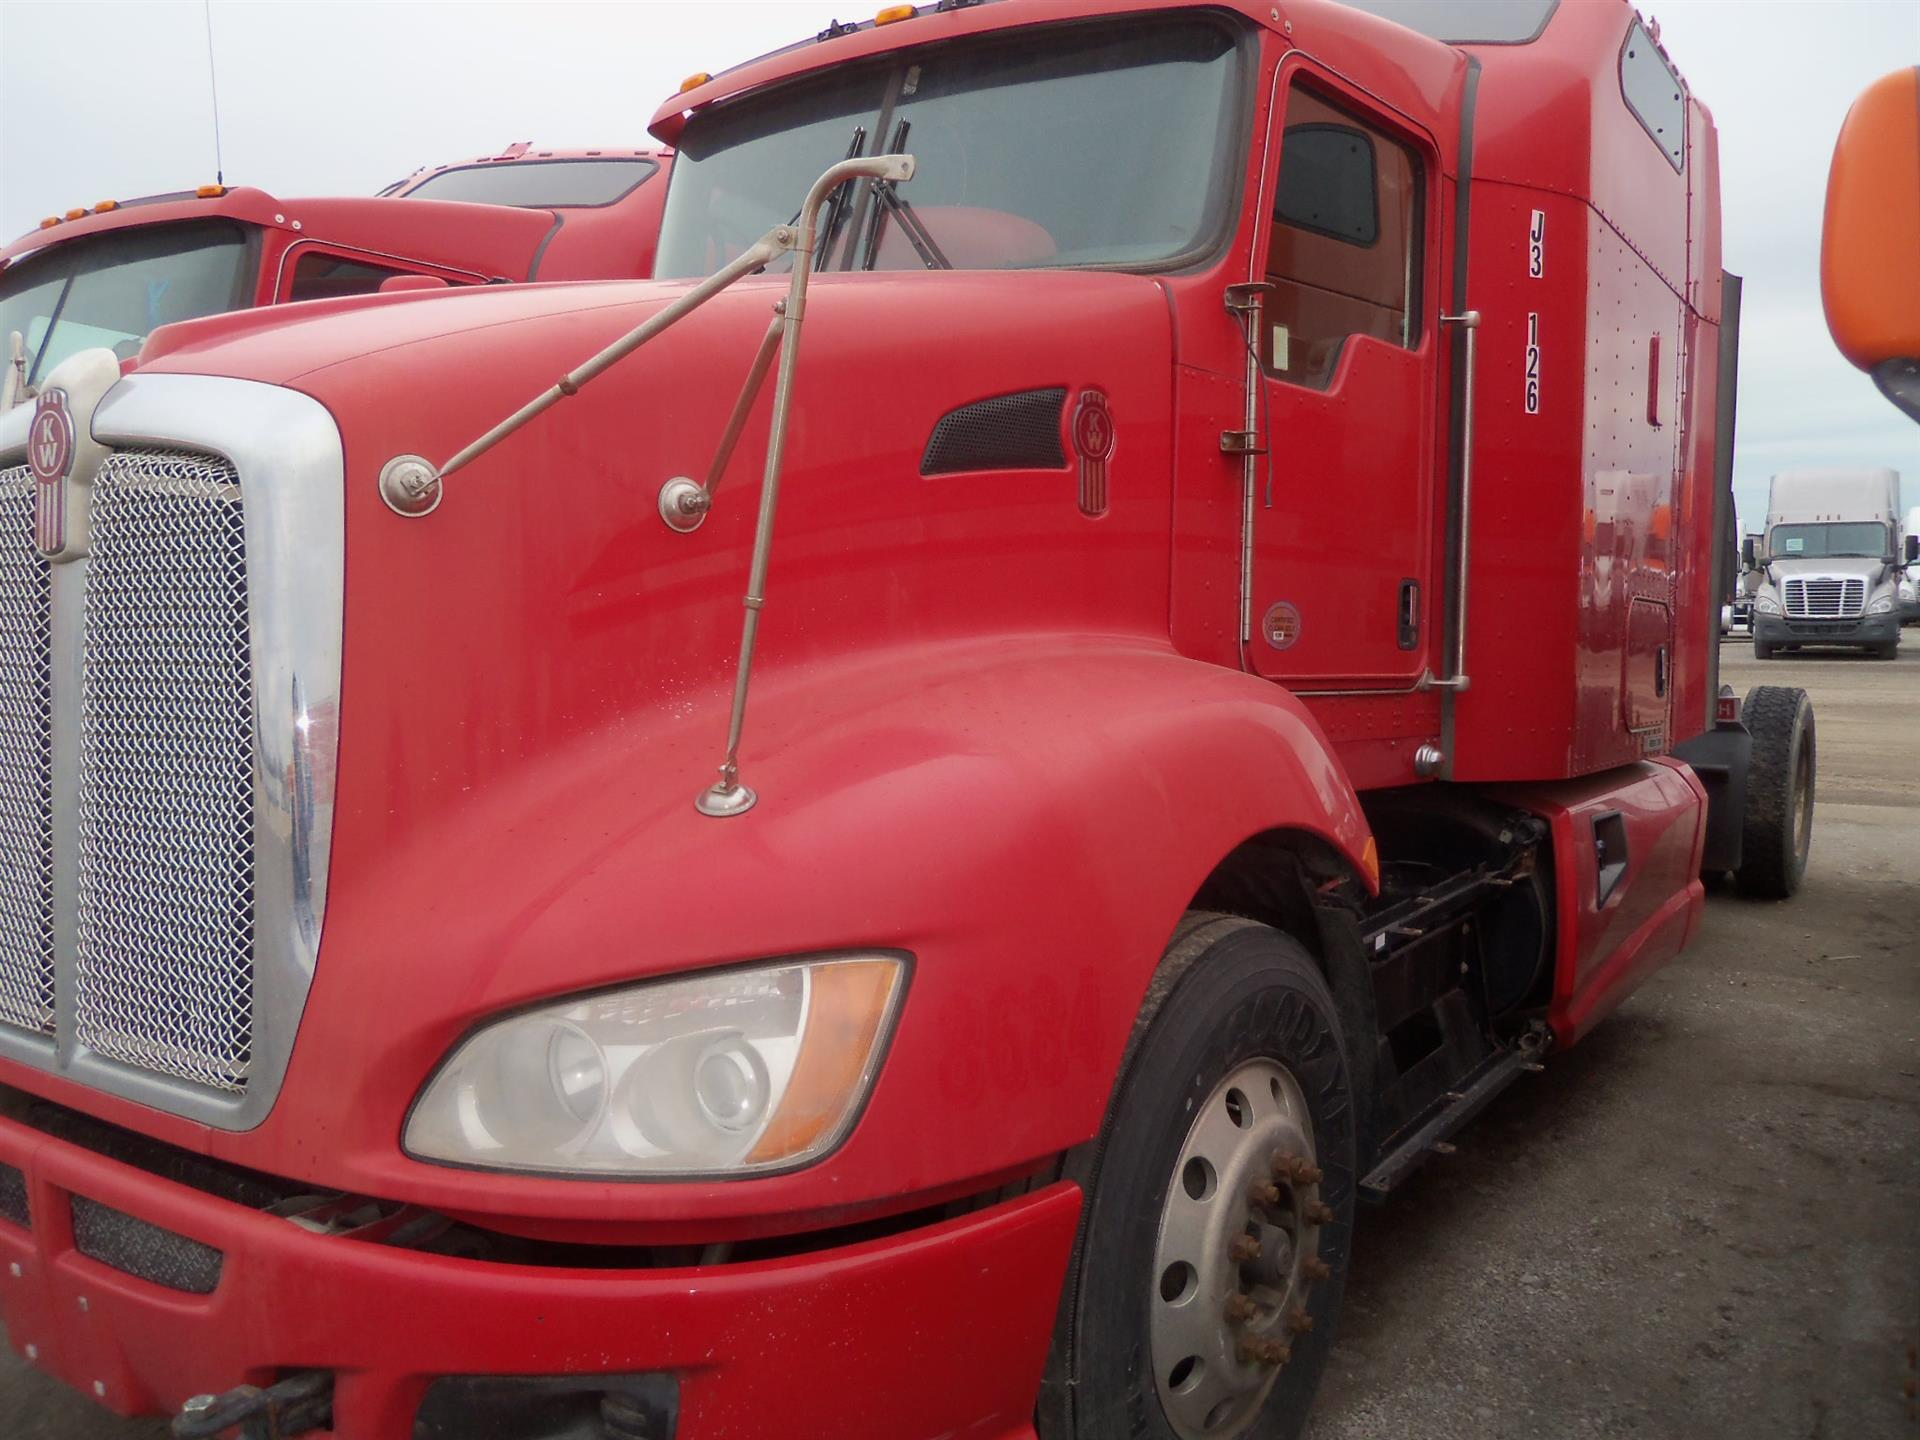 USED 2012 KENWORTH UNKNOWN DAYCAB TRUCK #84485